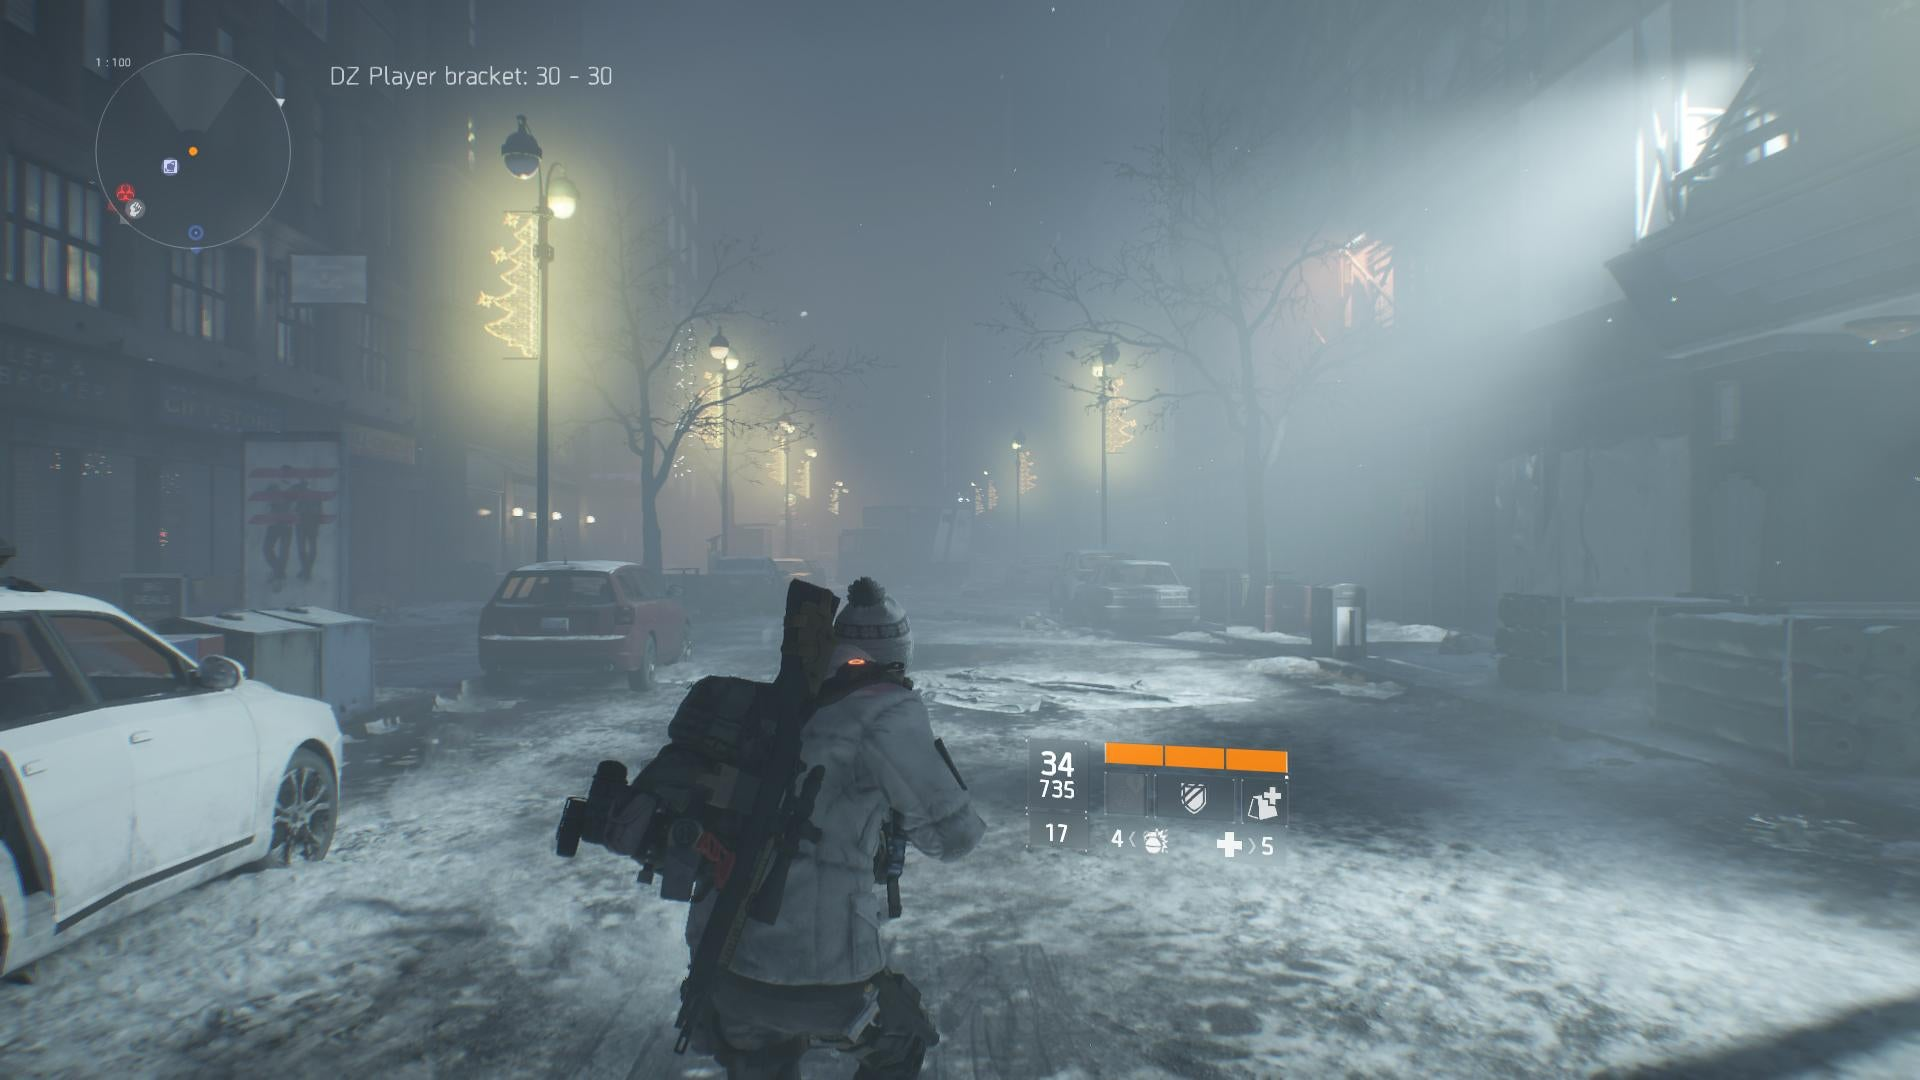 Tom Clancy's The Division: The Kotaku Review